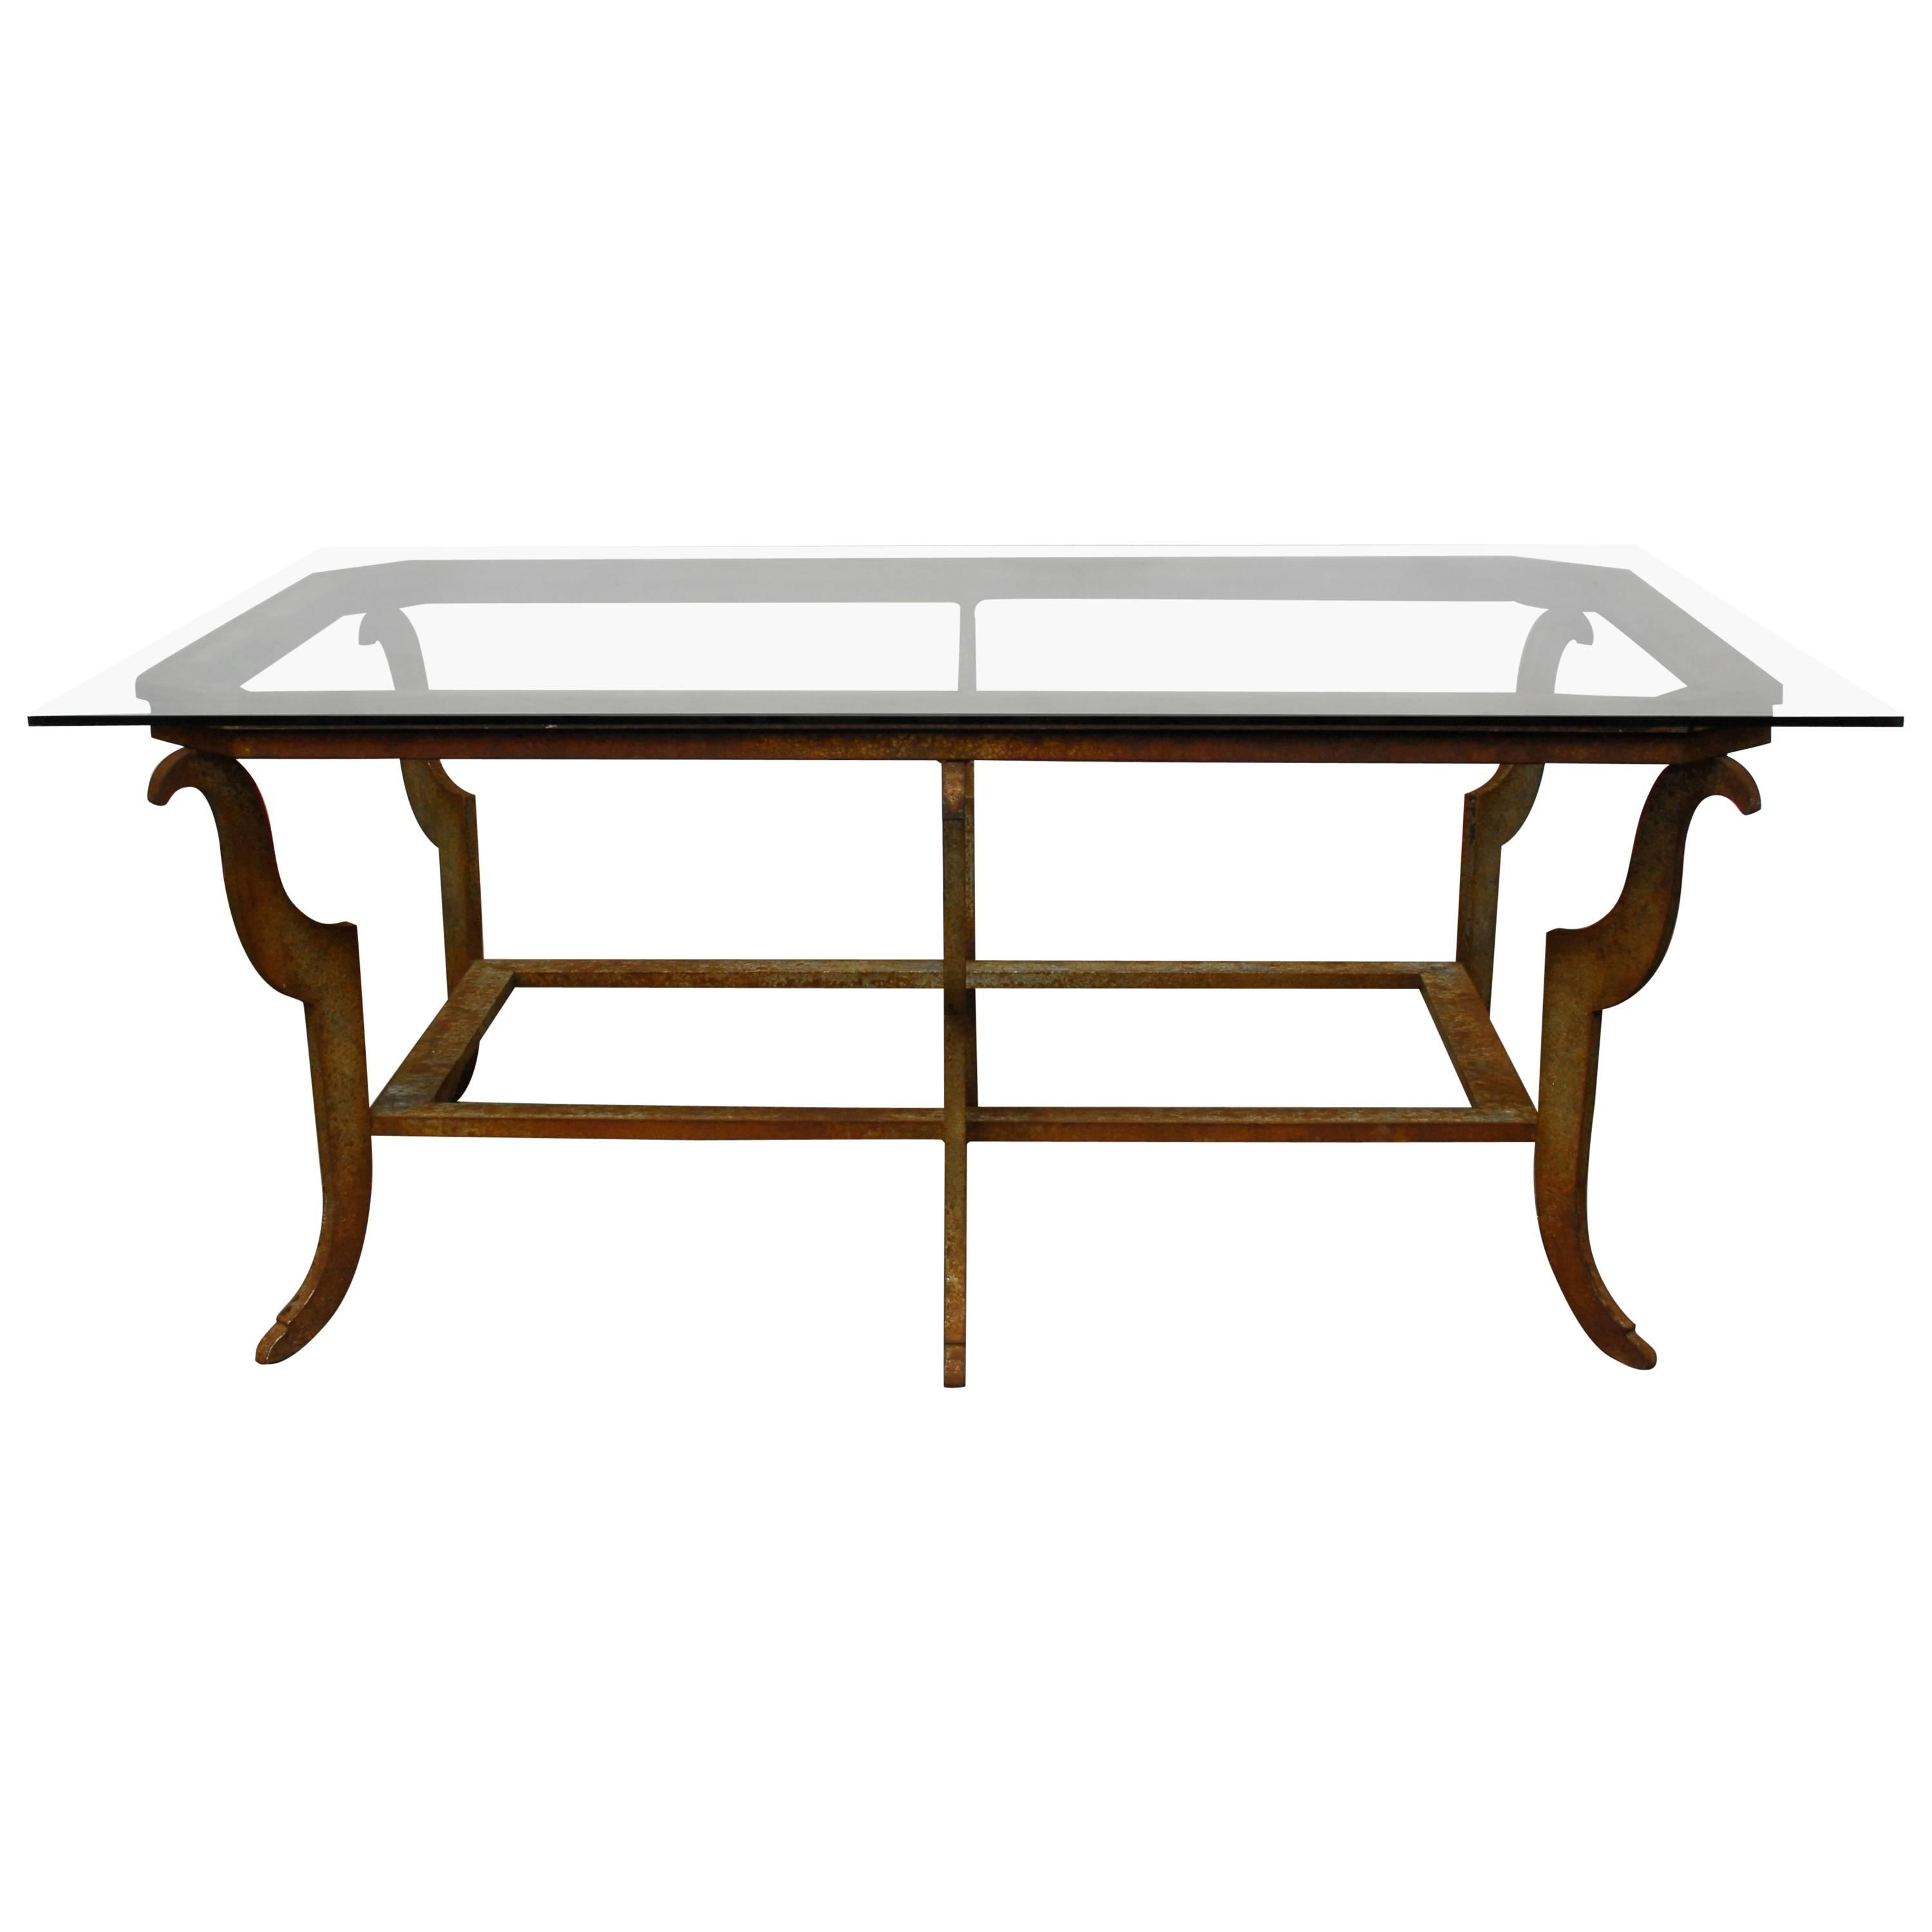 Current Rectangular Barbox Coffee Tables Within Sculpted Steel Patinated Coffee Table For Sale At 1stdibs (View 6 of 20)